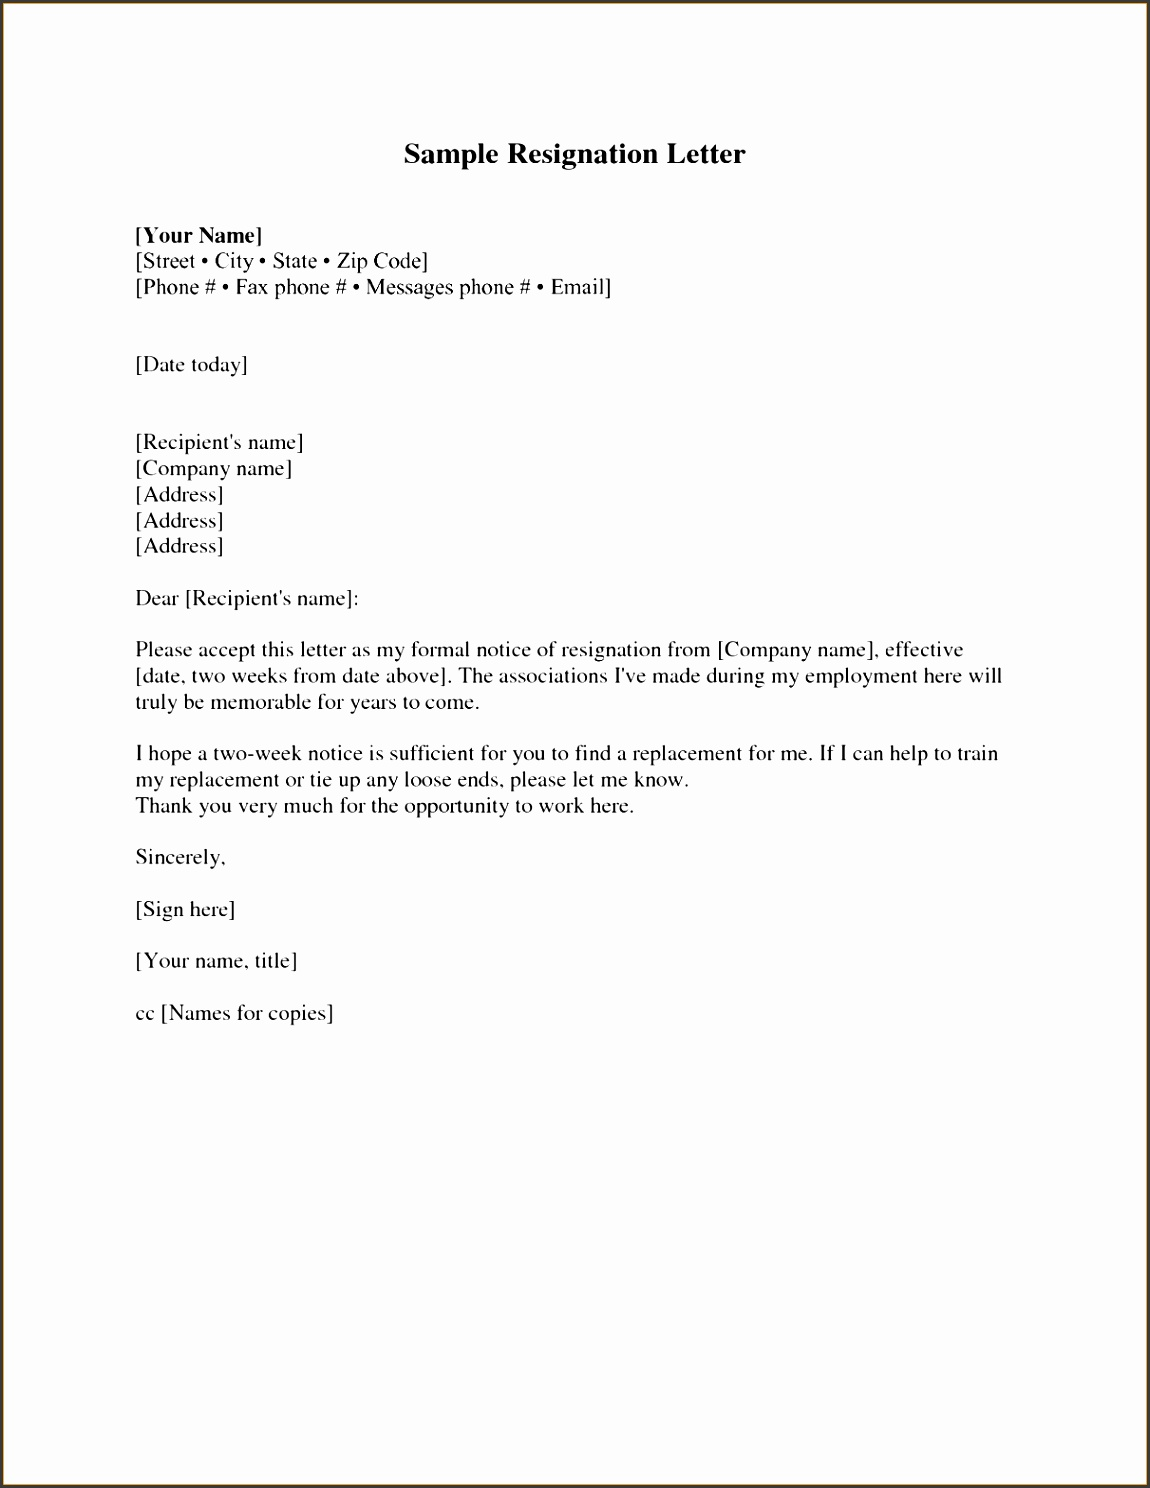 Format Two Weeks Notice Letter Resignation Letter Example with 2 Printable Two Week Notice Letter Resignation